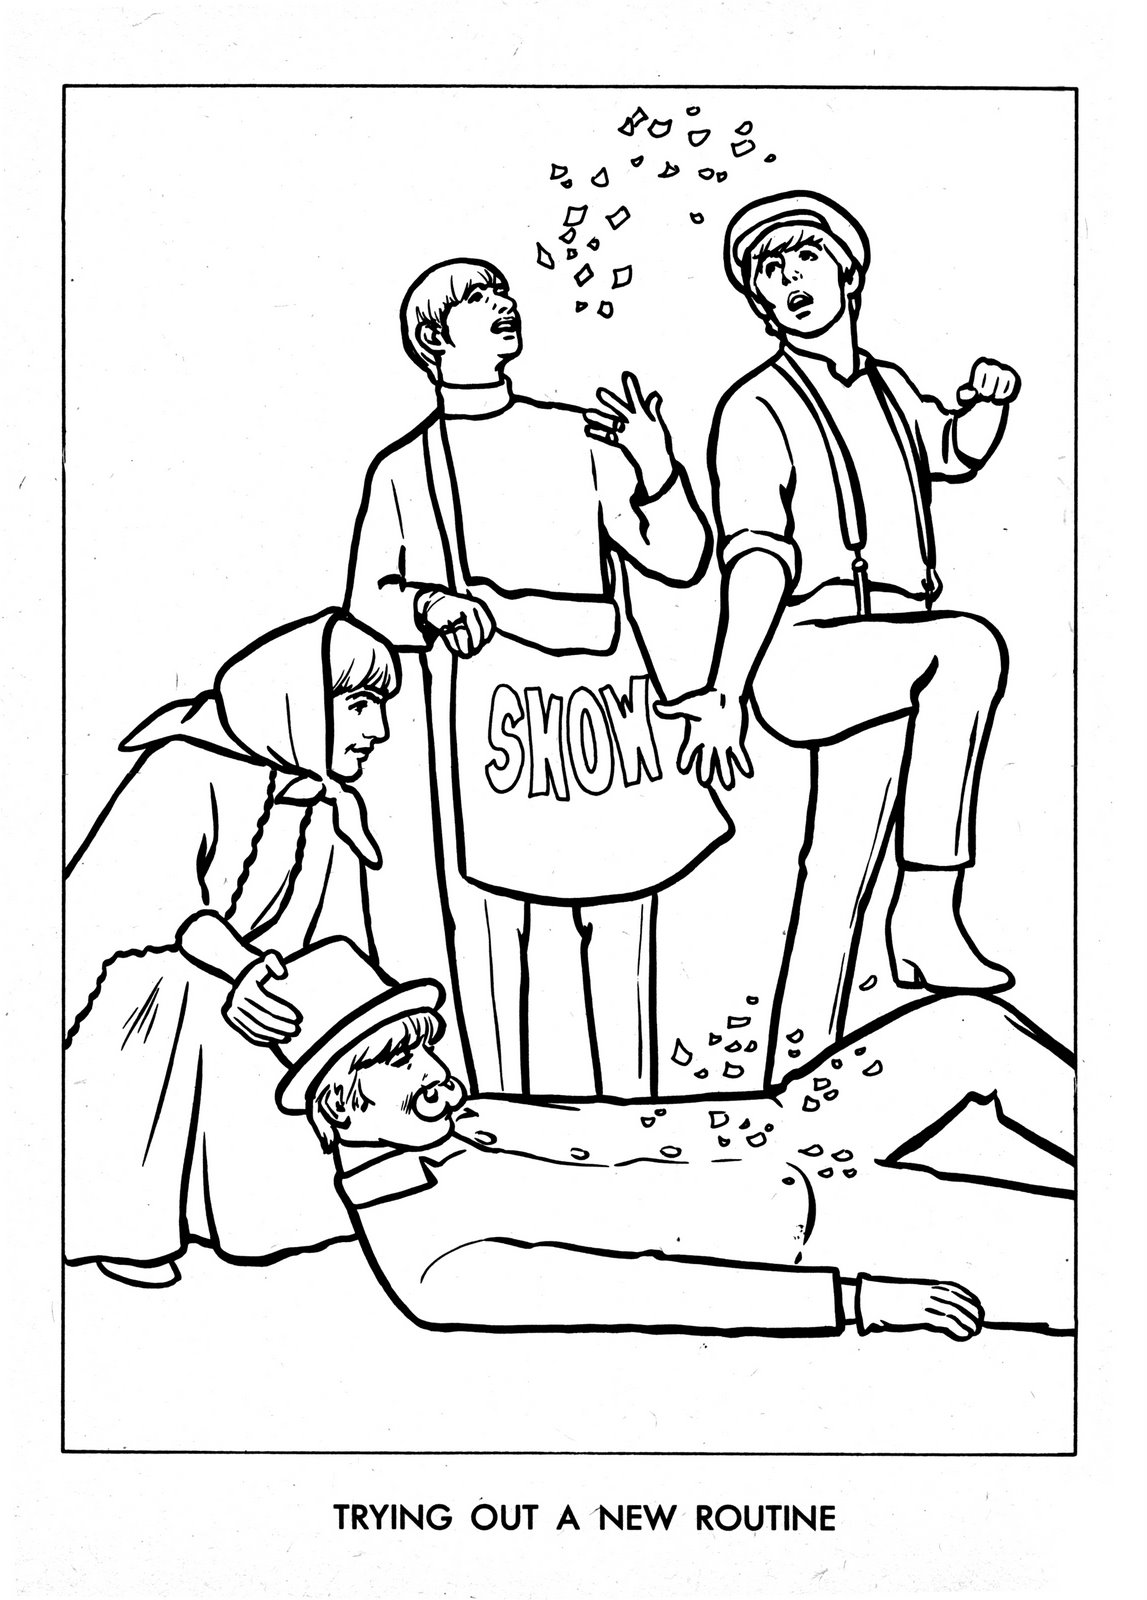 Beatles coloring book pages sketch coloring page for Beatles coloring book pages